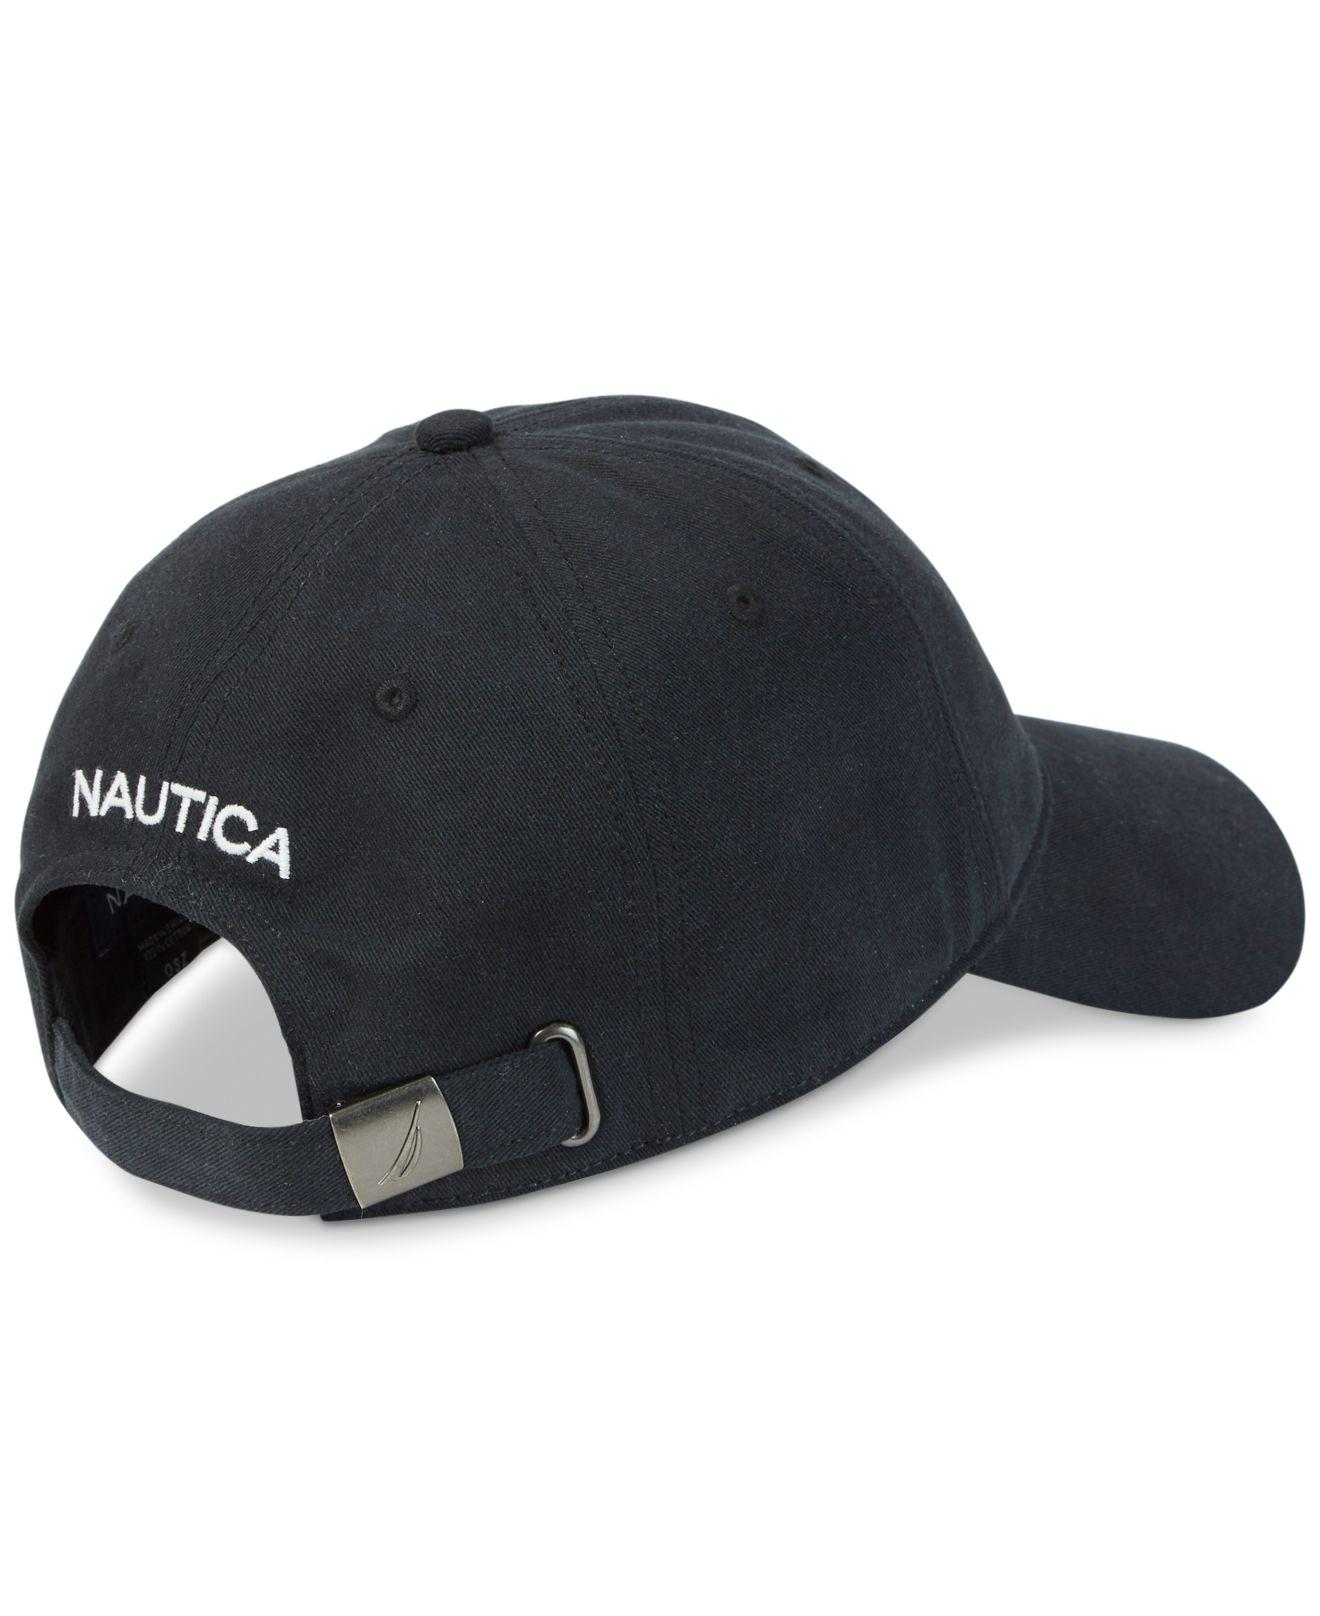 1b262449ff174 Nautica Logo Baseball Cap in Black for Men - Lyst